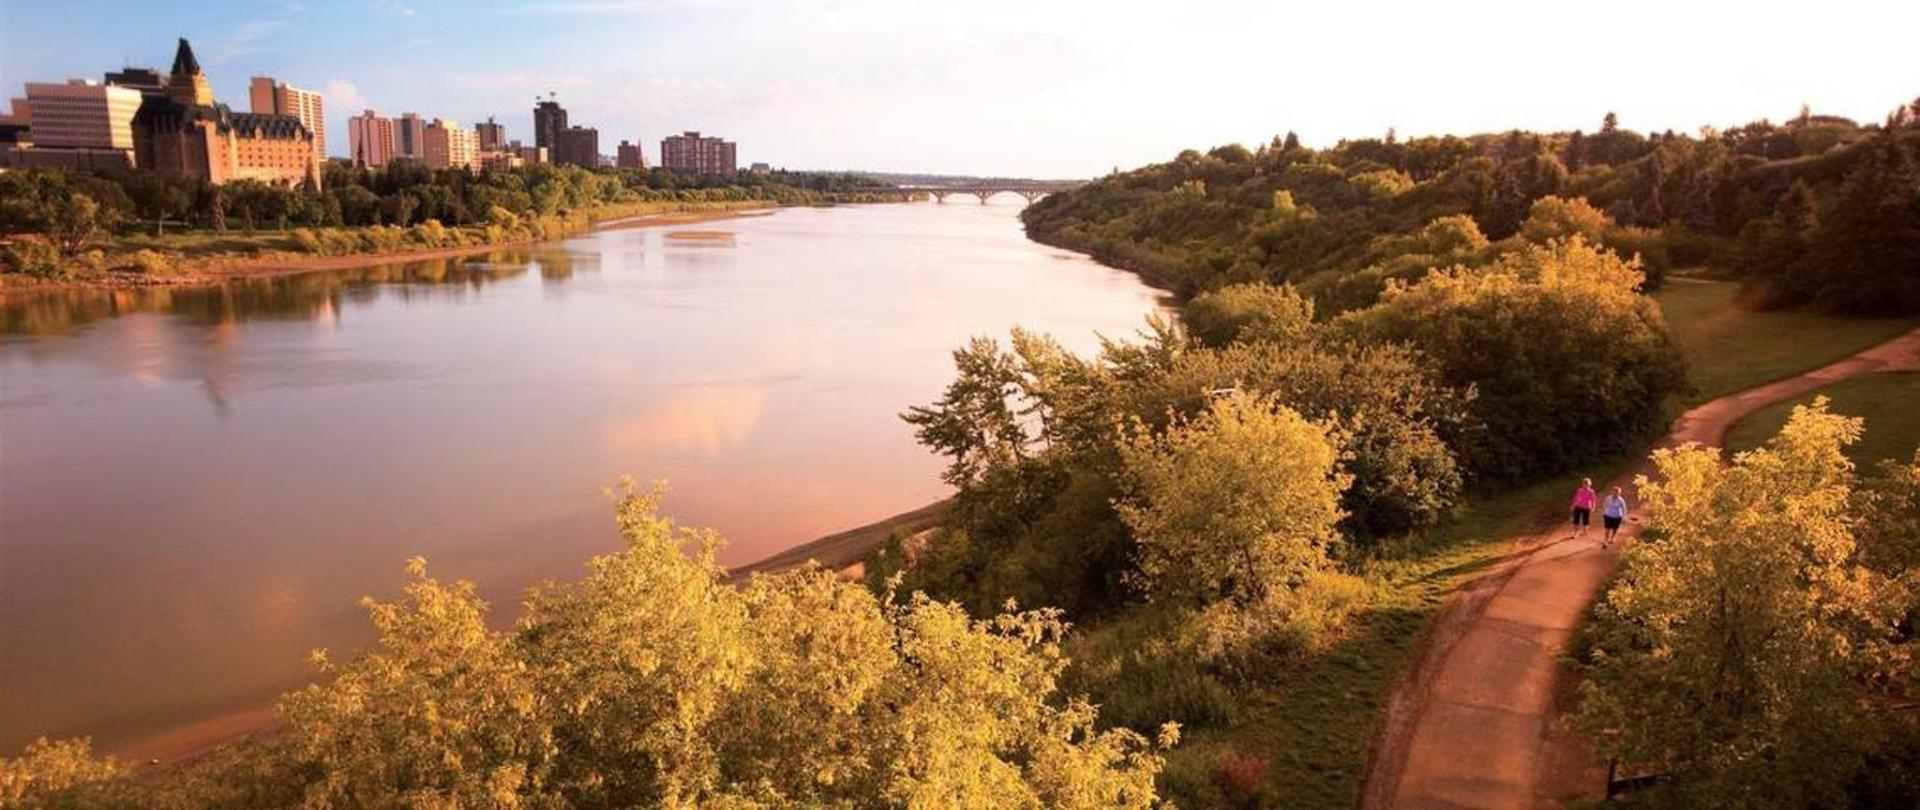 meewasin-valley-trails-along-the-south-saskatchewan-river-compliments-of-tourism-saskatoon.jpg.1140x481_default.jpg